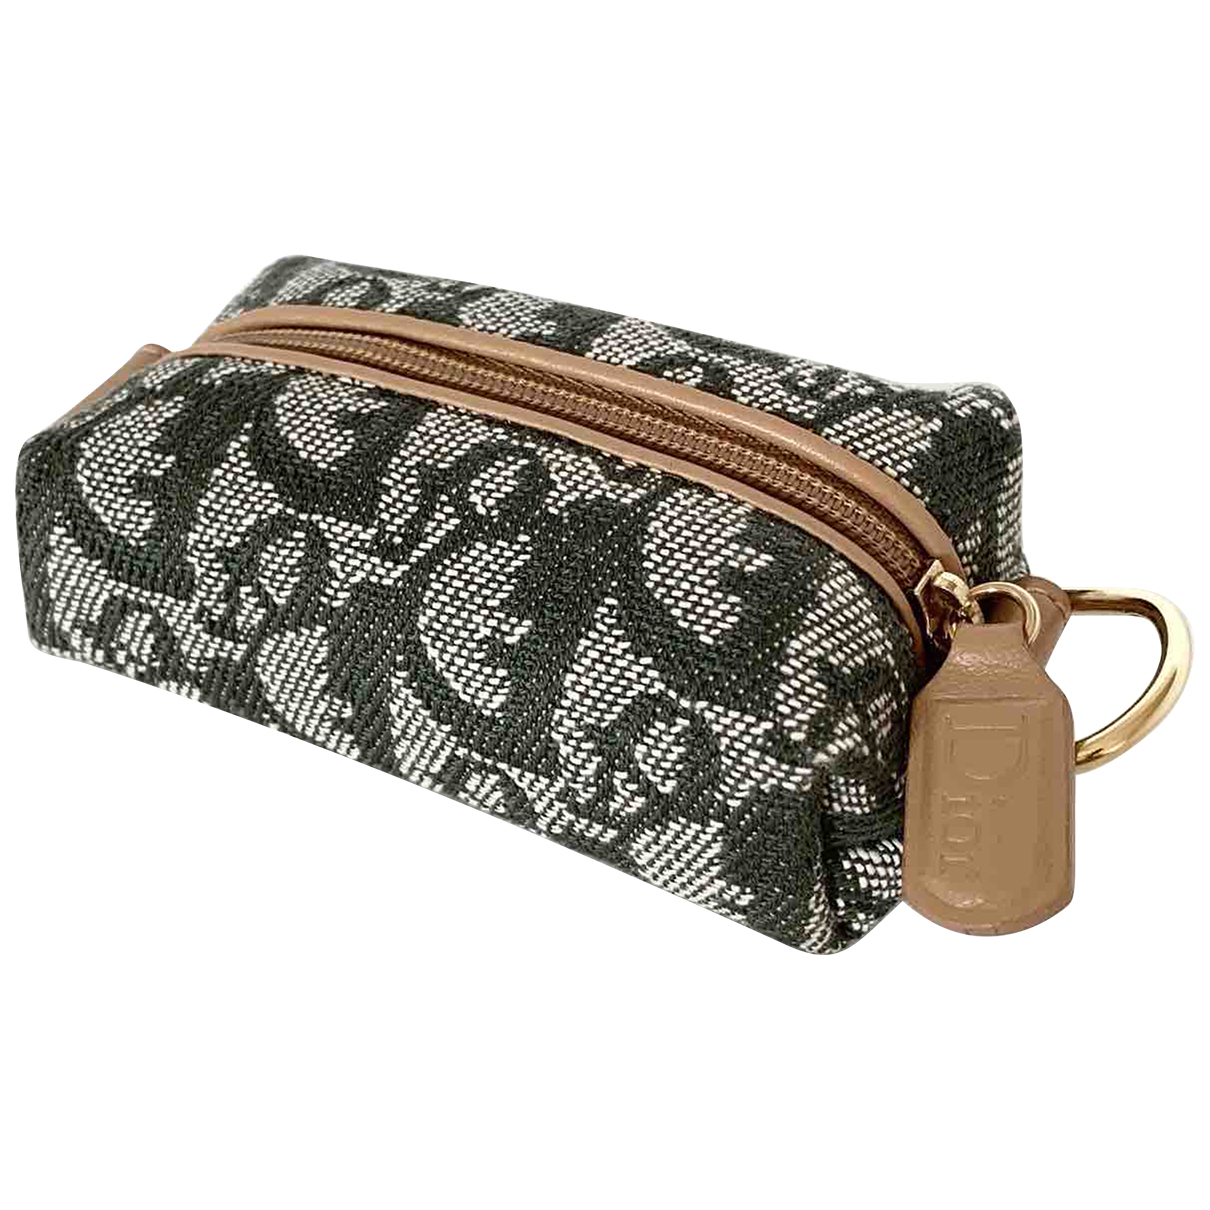 Dior N Beige Cloth Purses, wallet & cases for Women N